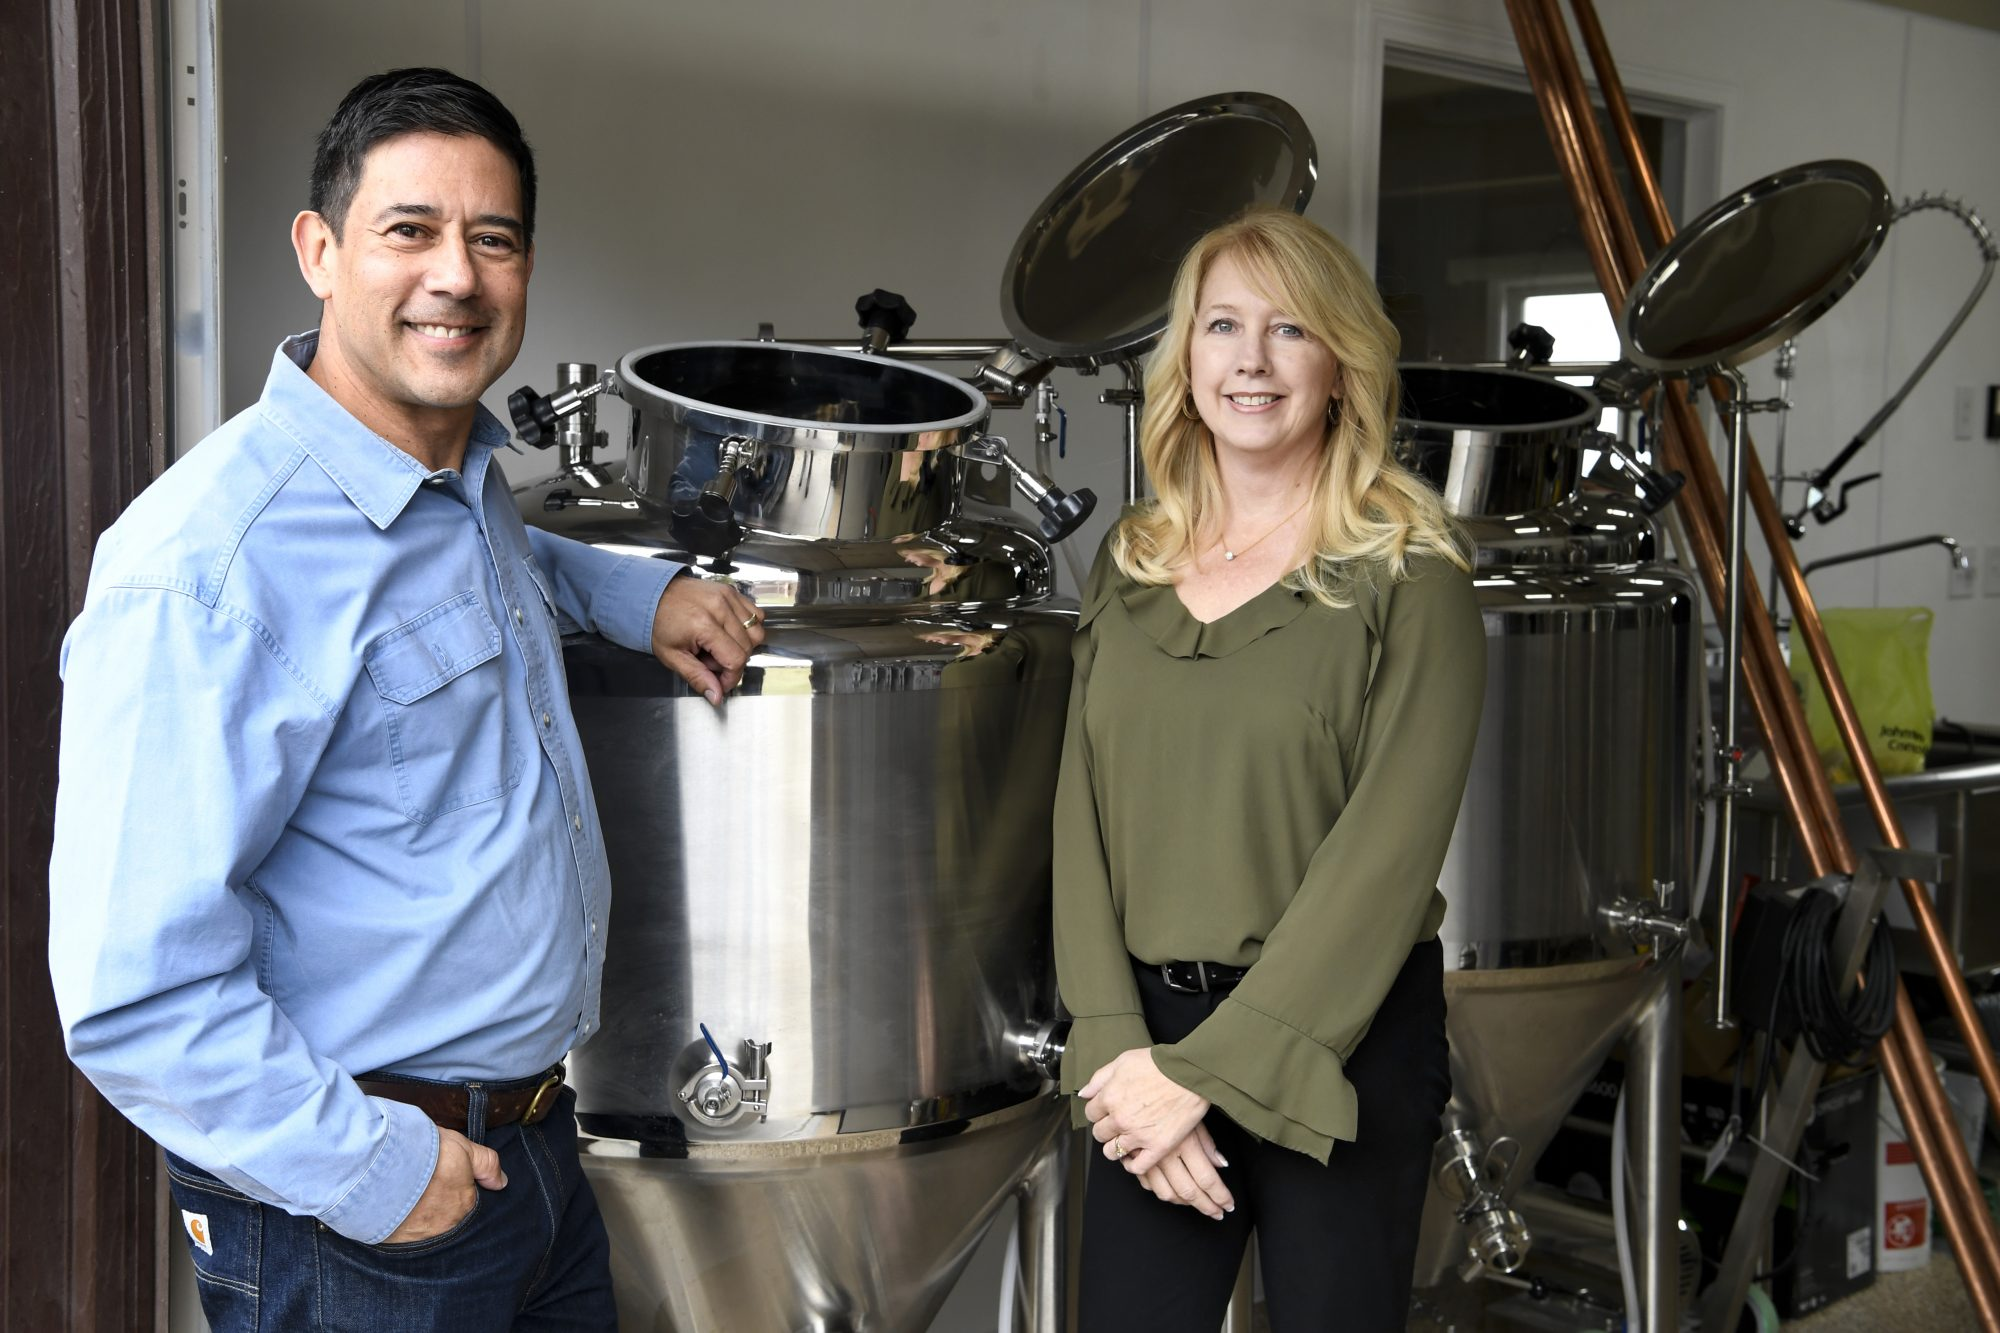 The Creator of Blue Moon Launches New Family-Run Brewery in Denver